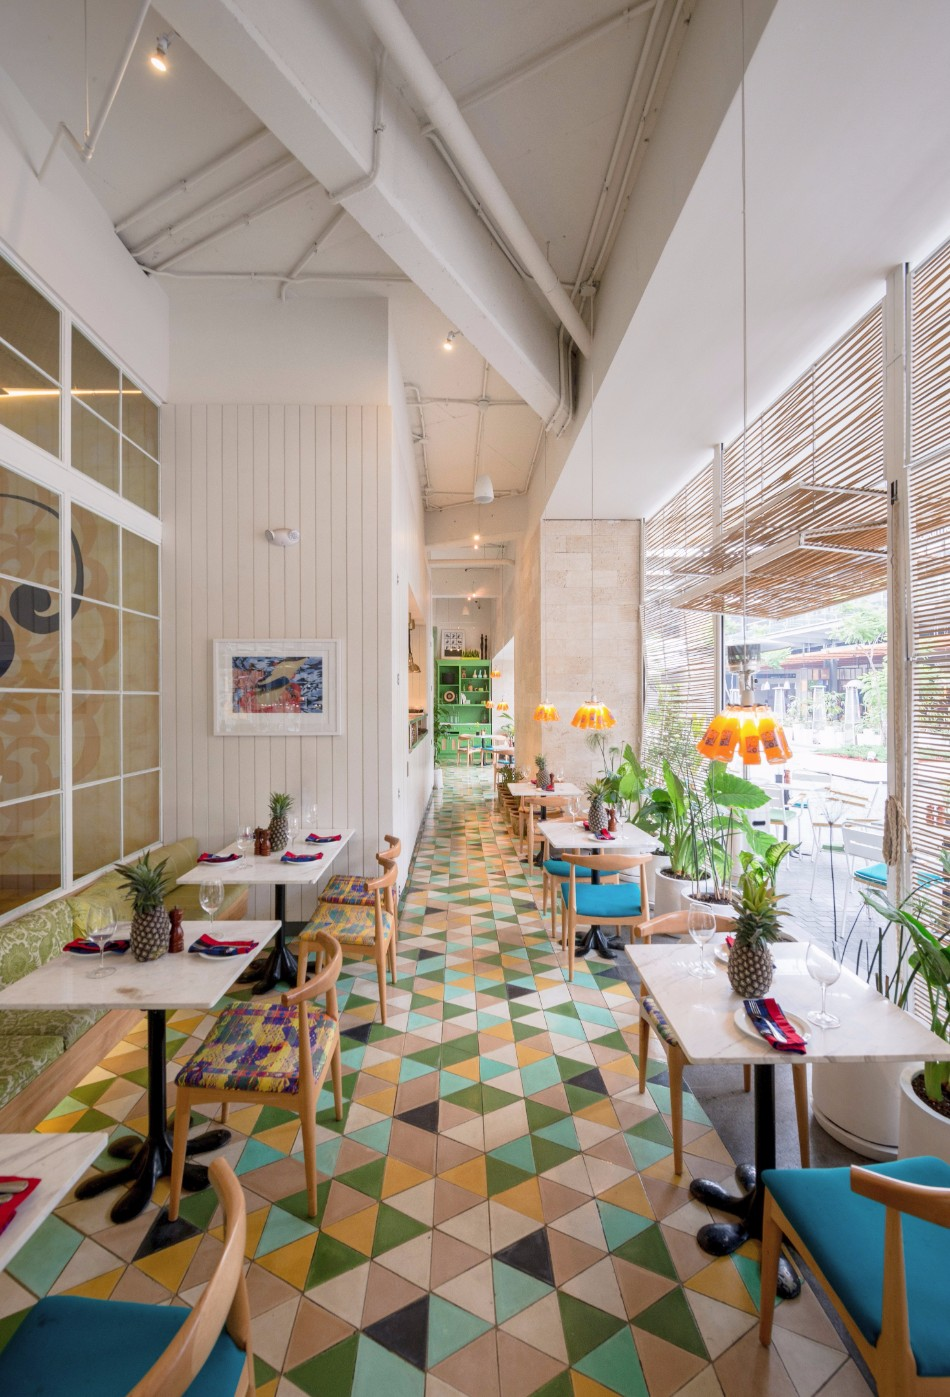 Get Inspired by this Colorful and Outstanding Restaurant Design | www.bocadolobo.com #diningroom #diningarea #thediningroom #diningchairs #restaurants #luxuryrestaurants #restaurantdesign #roomdesign #moderndiningtables @moderndiningtables